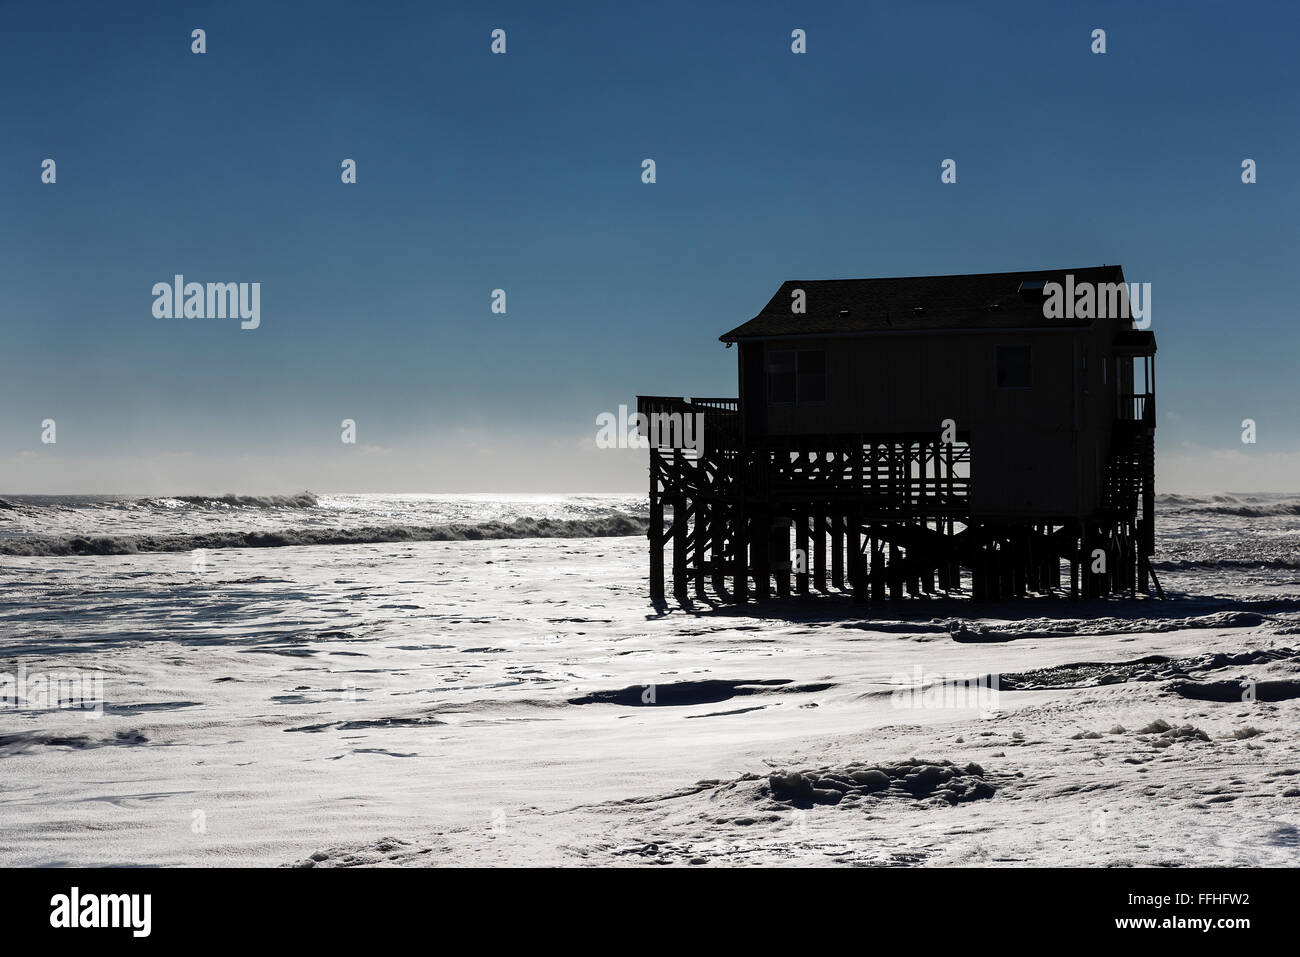 Beach house on stilts surrounded by high tide surf, Nags Head, Outer Banks, North Carolina, USA - Stock Image